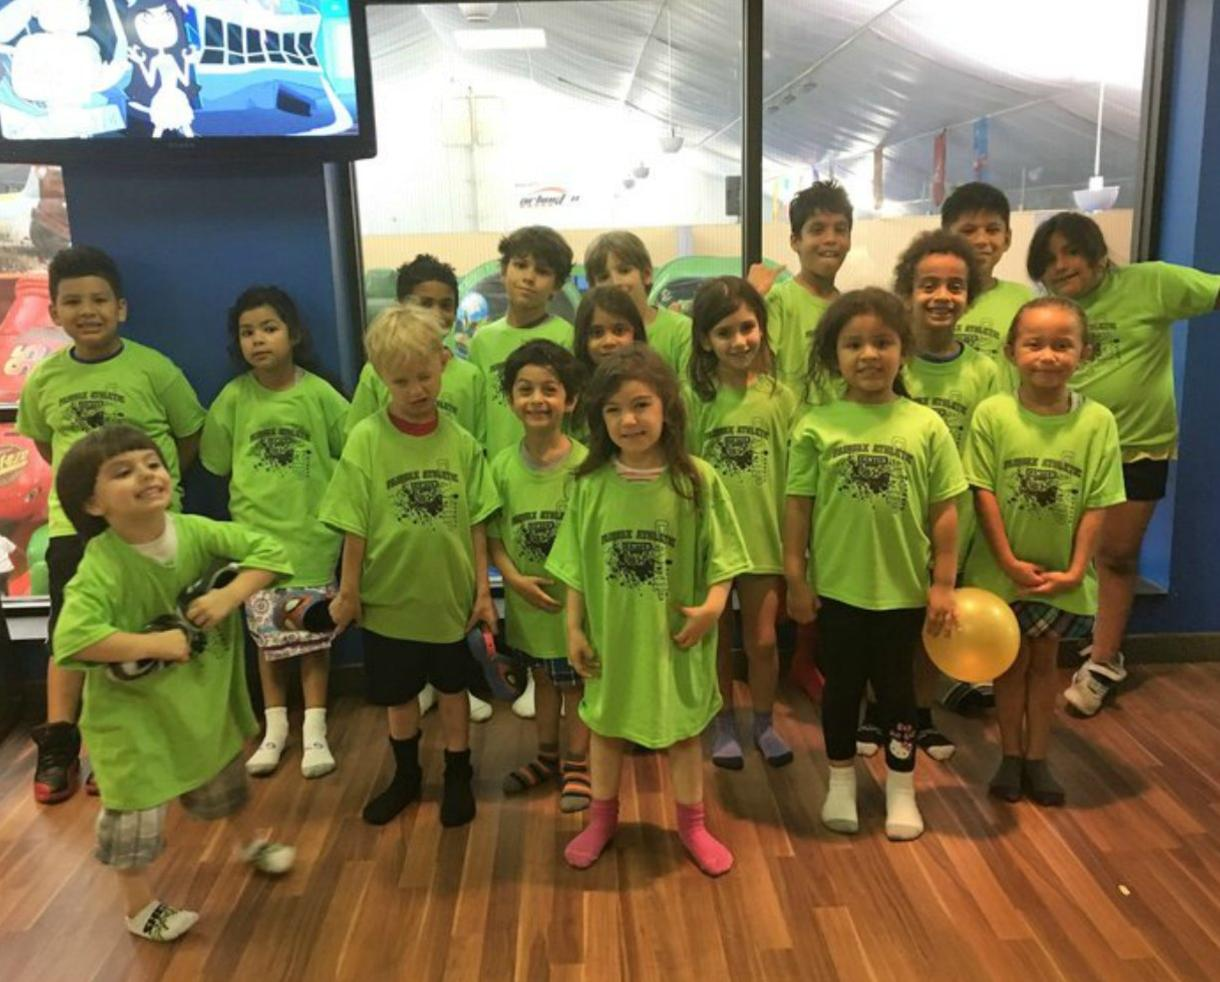 Fairfax Athletic Center Multi-Sport Camp